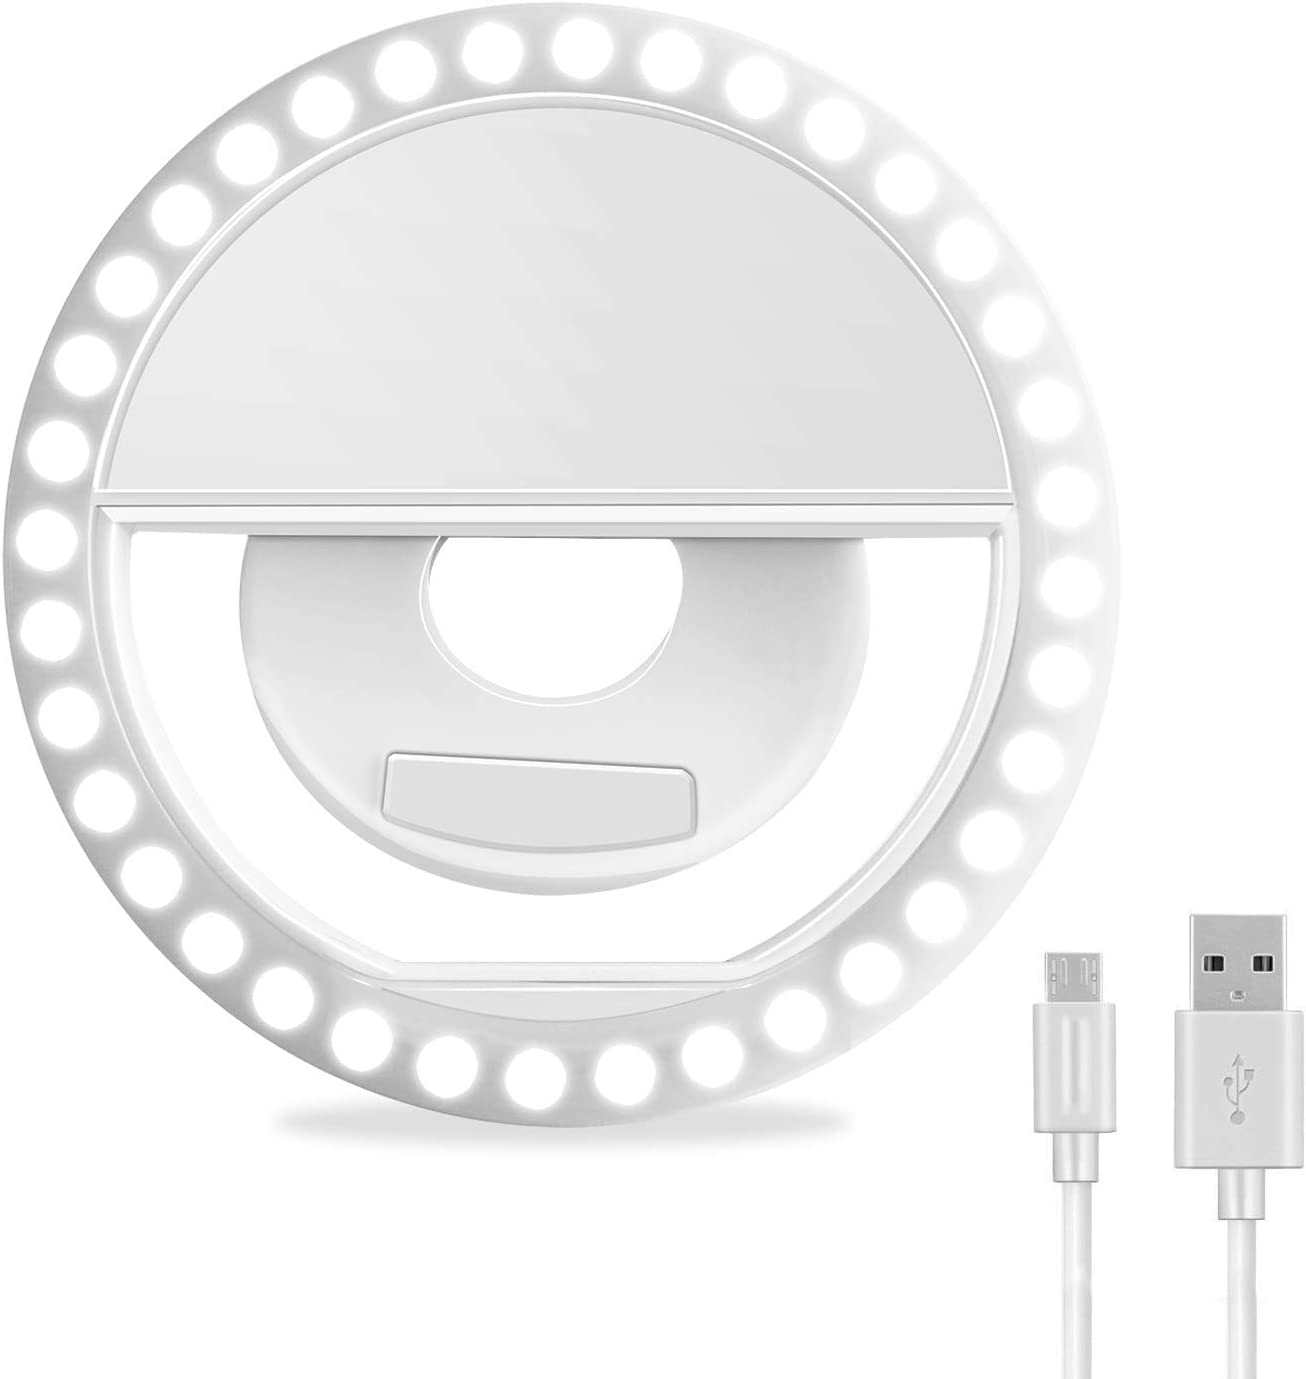 Selfie Ring Light, XINBAOHONG Rechargeable Portable Clip-on Selfie Fill Light with 36 LED for iPhone/Android Smart Phone Photography, Camera Video, Girl Makes up (White)